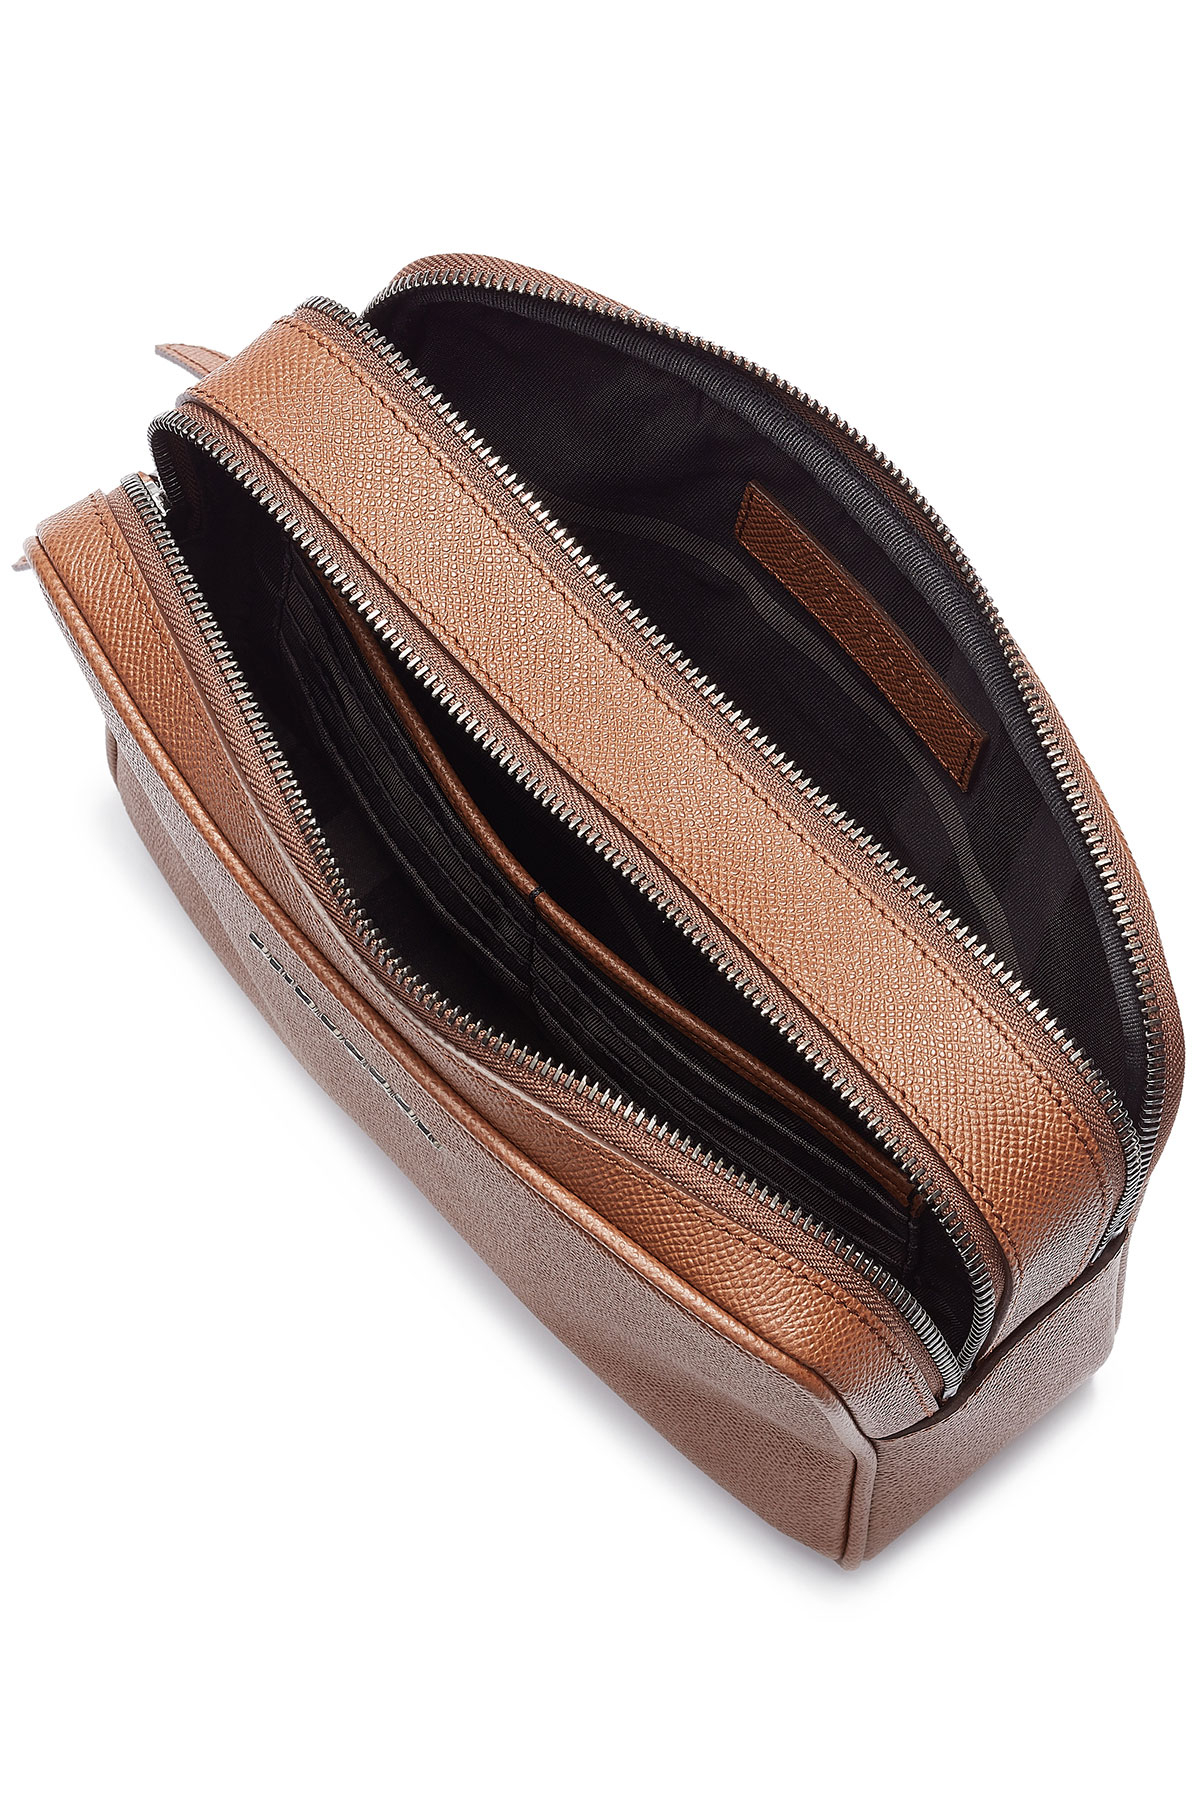 How To Clean Burberry Leather Wallet - Best Photo Wallet ... a5cf39de7ffab